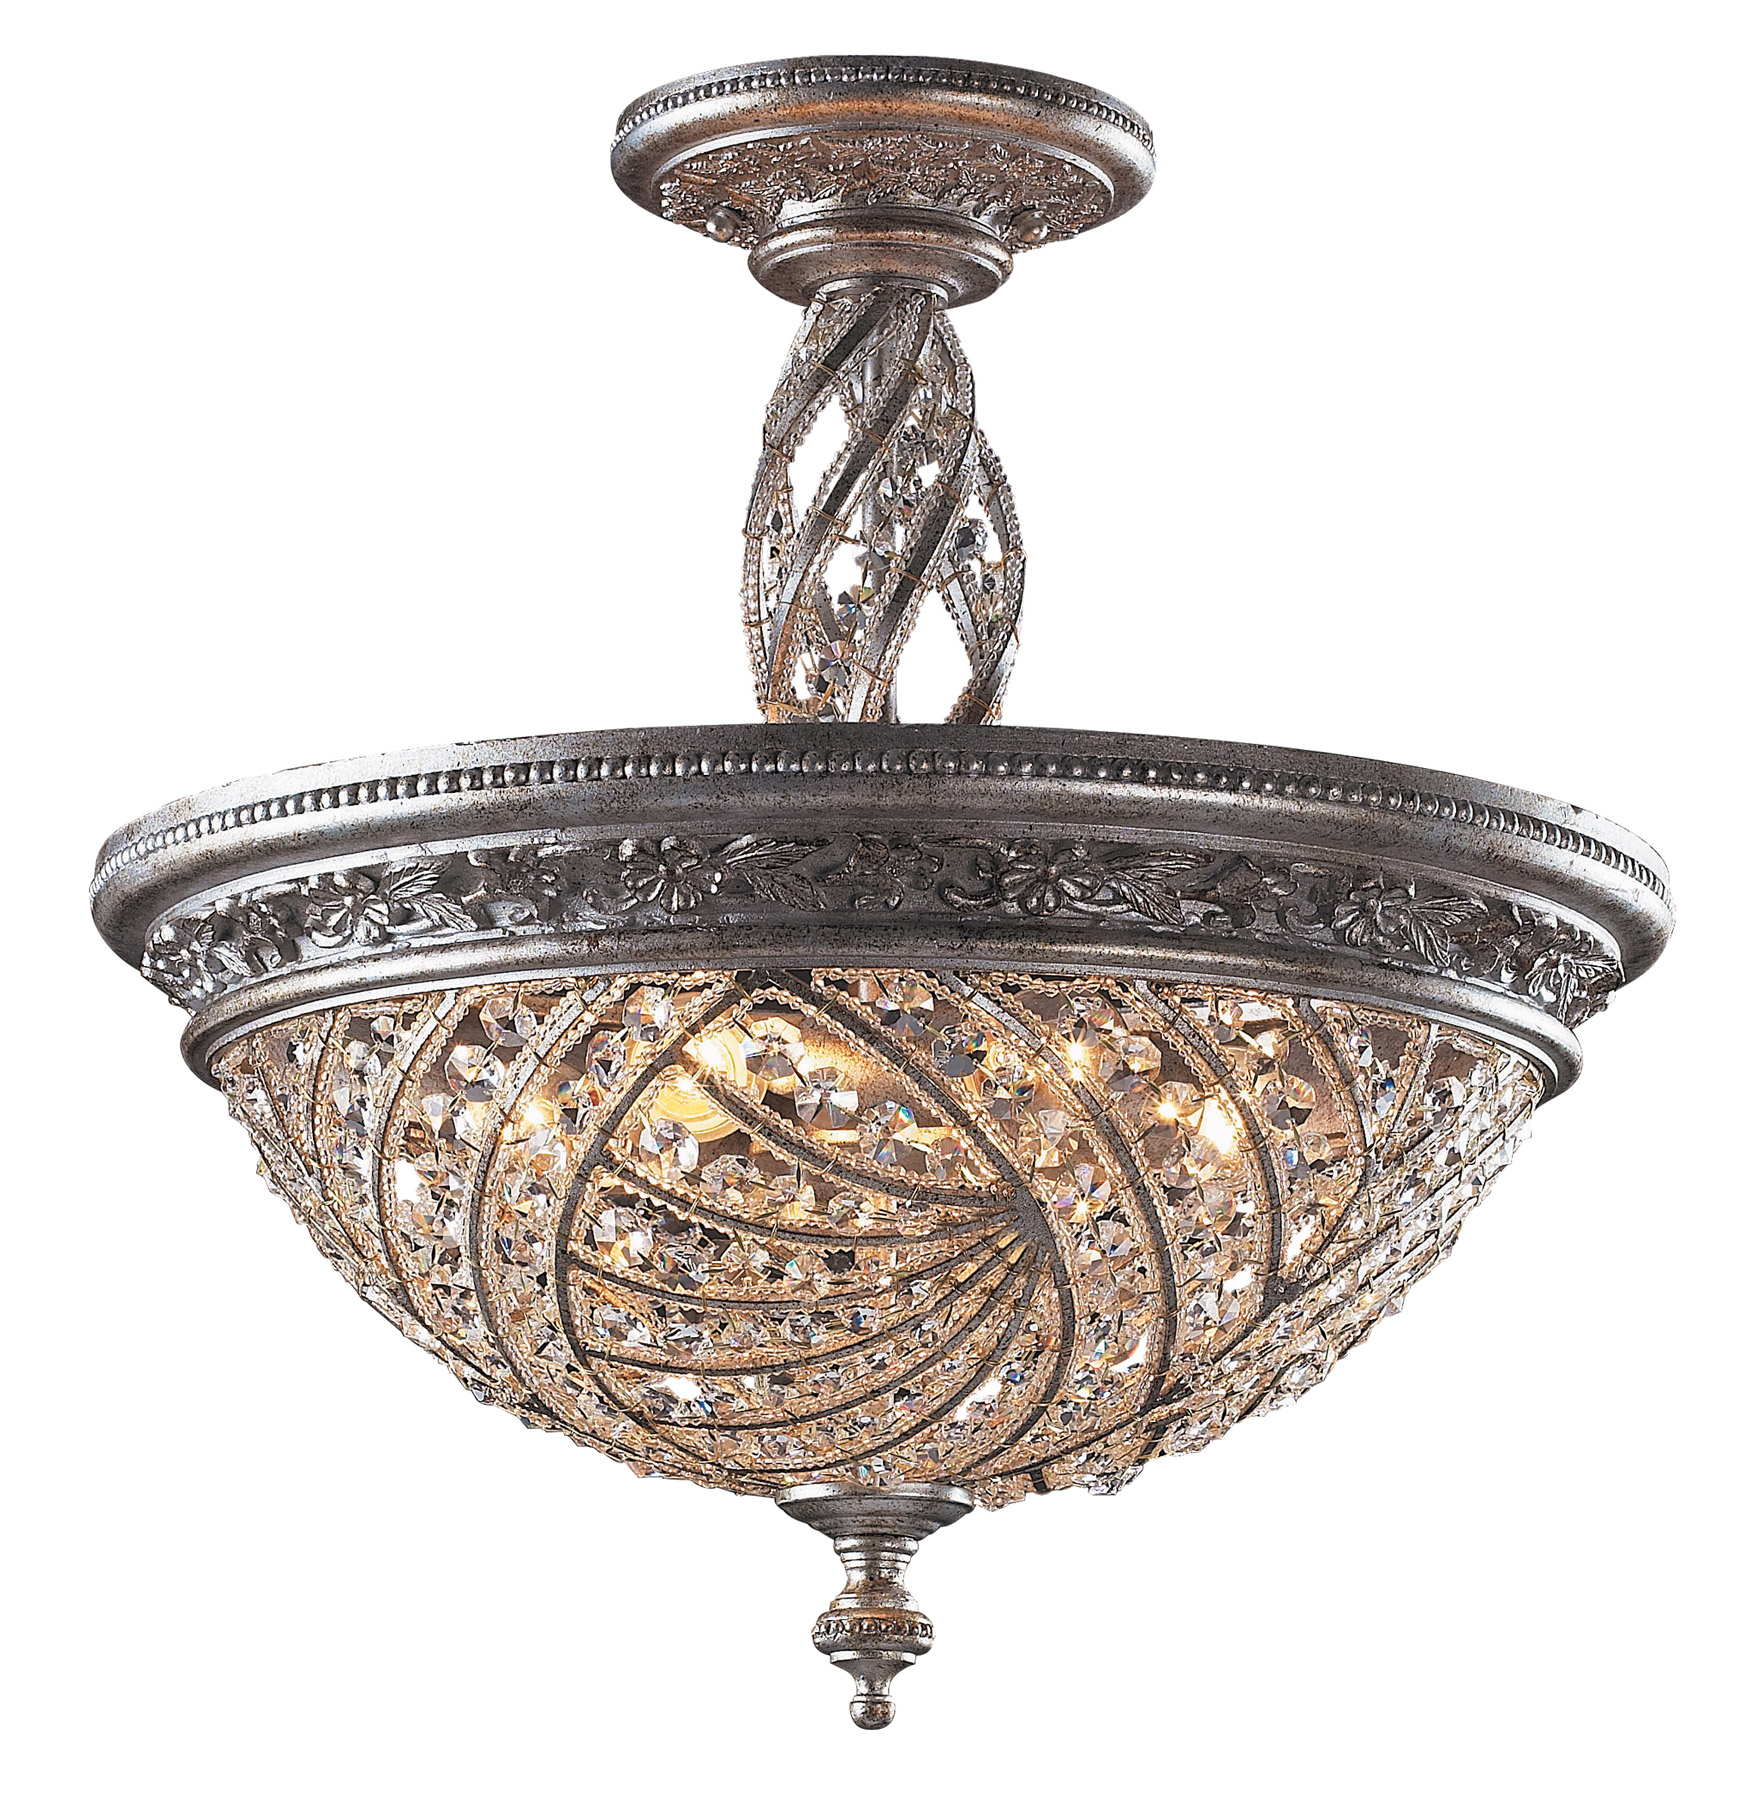 Lighting 62336 crystal renaissance semi flush mount ceiling fixture elk lighting 62336 crystal renaissance semi flush mount ceiling fixture arubaitofo Image collections